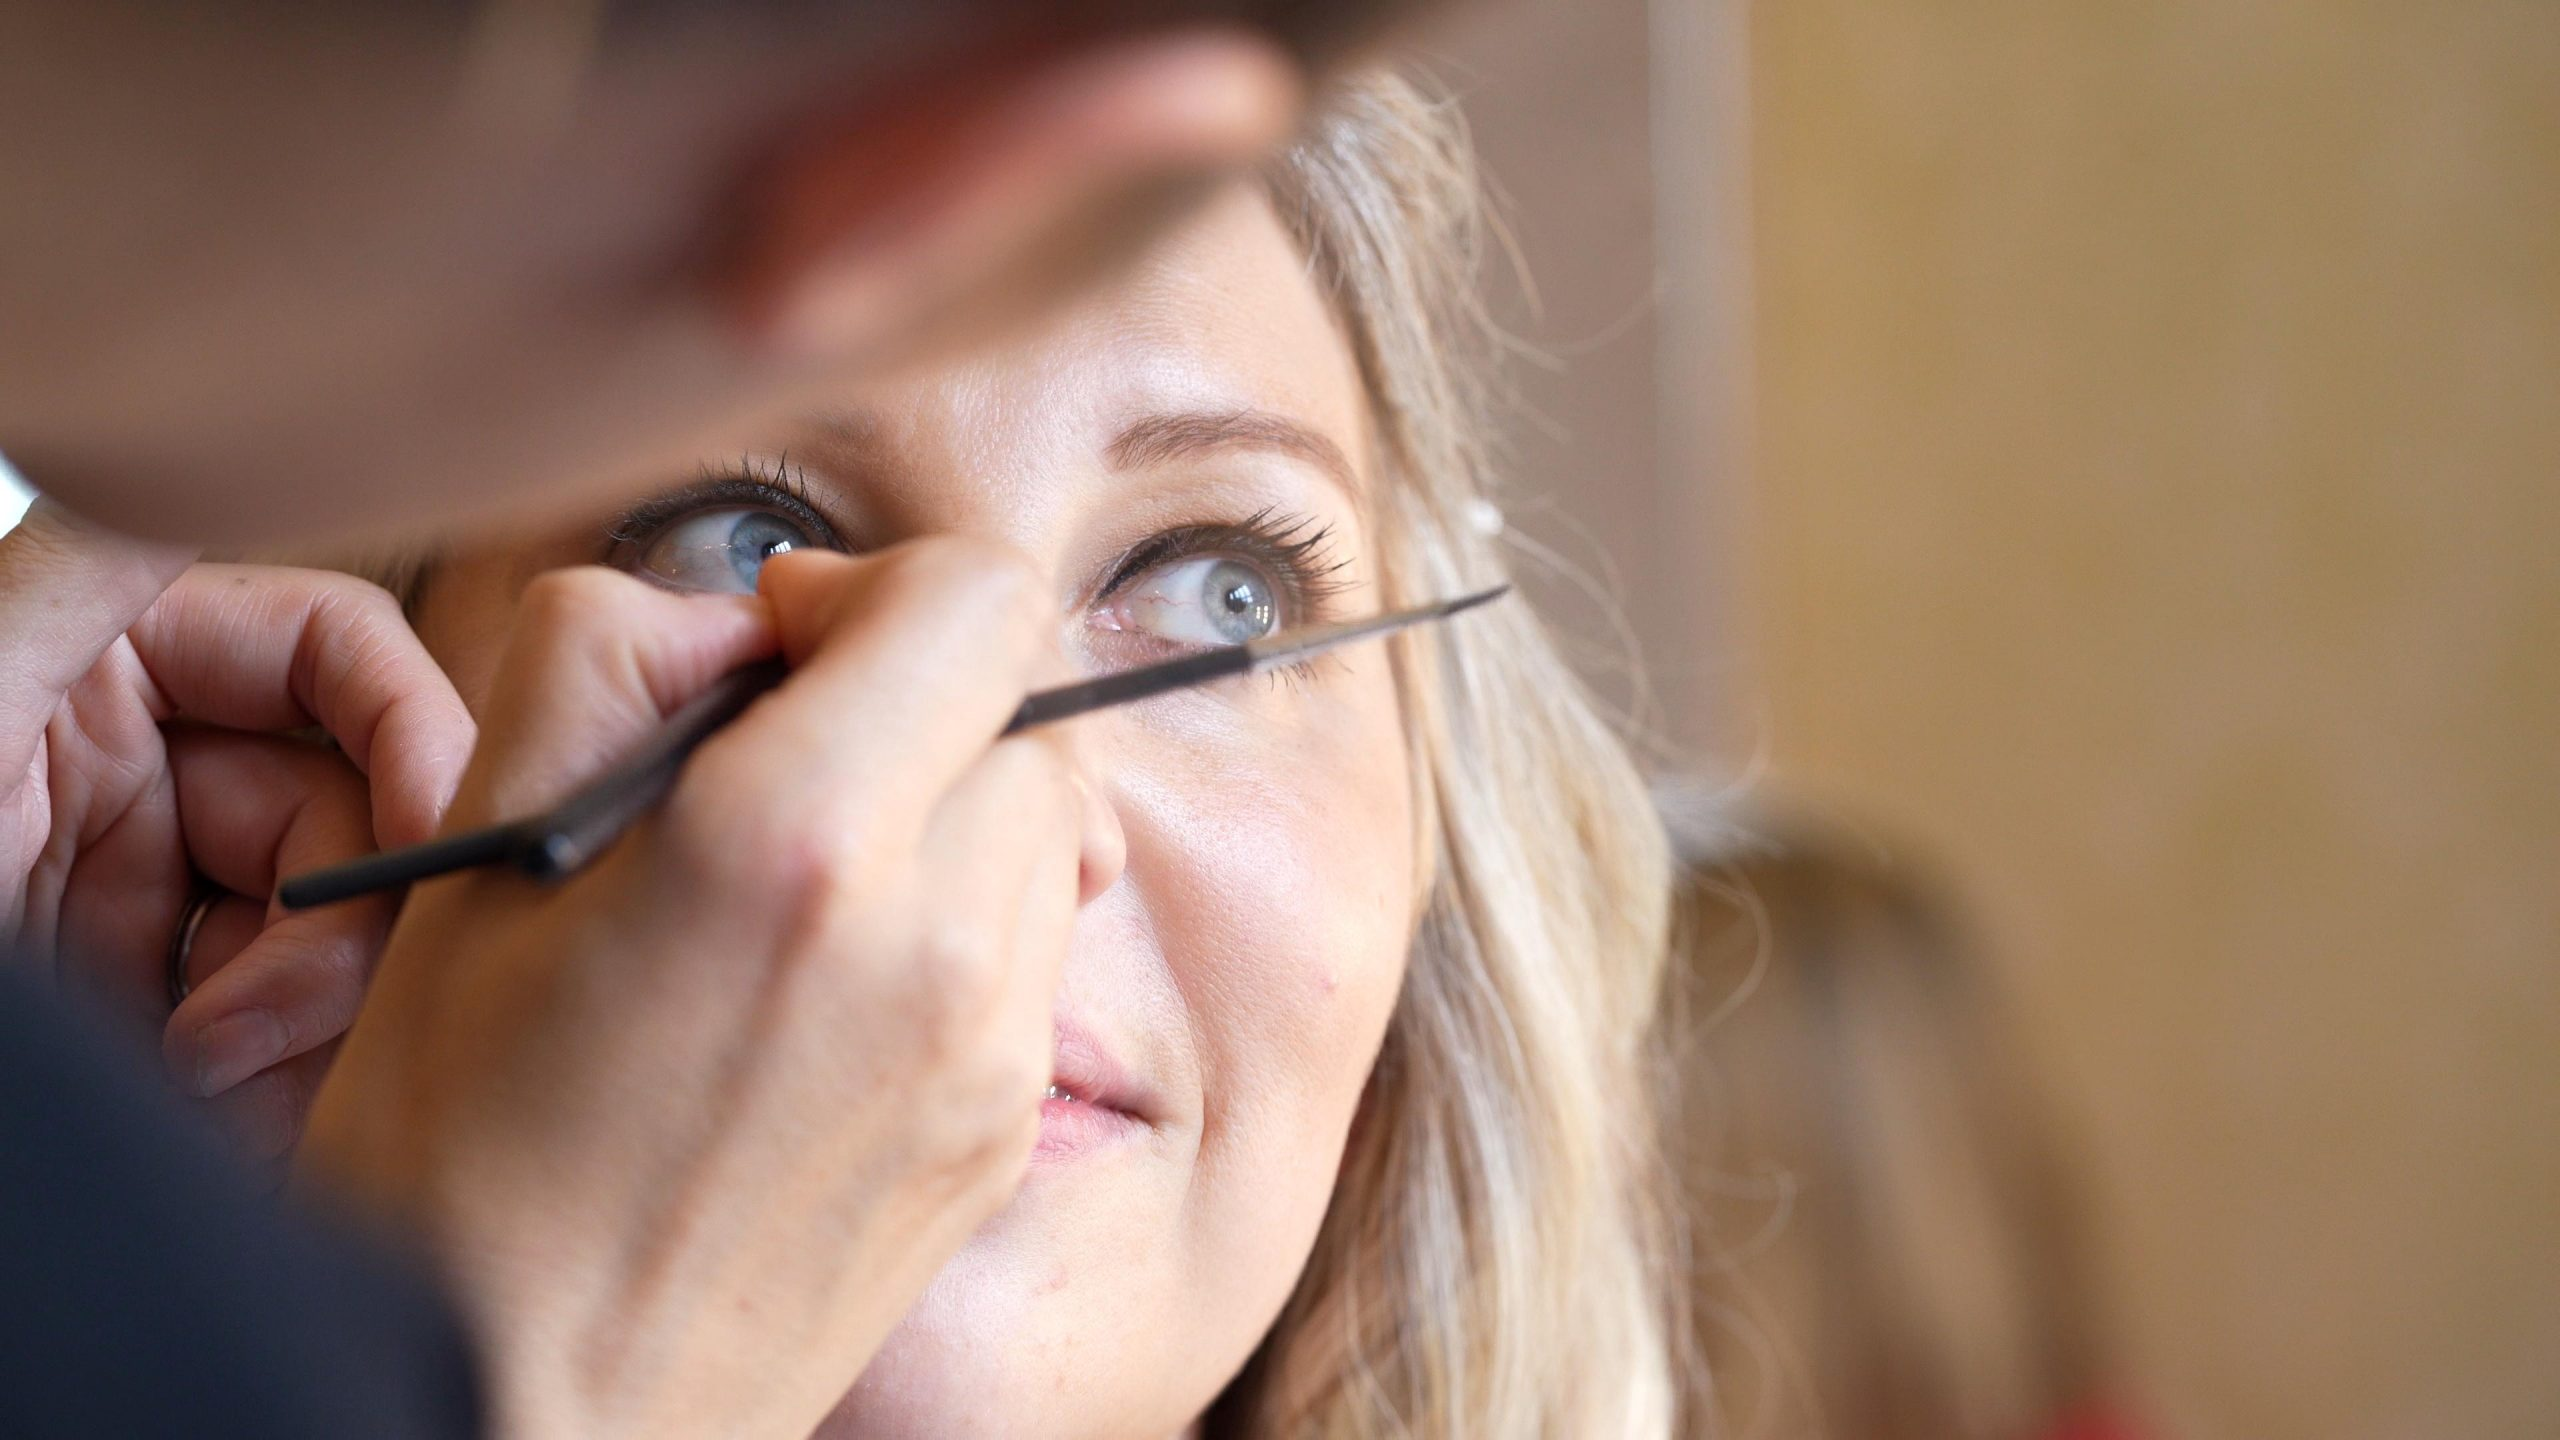 bride has her eye makeup touched up during wedding